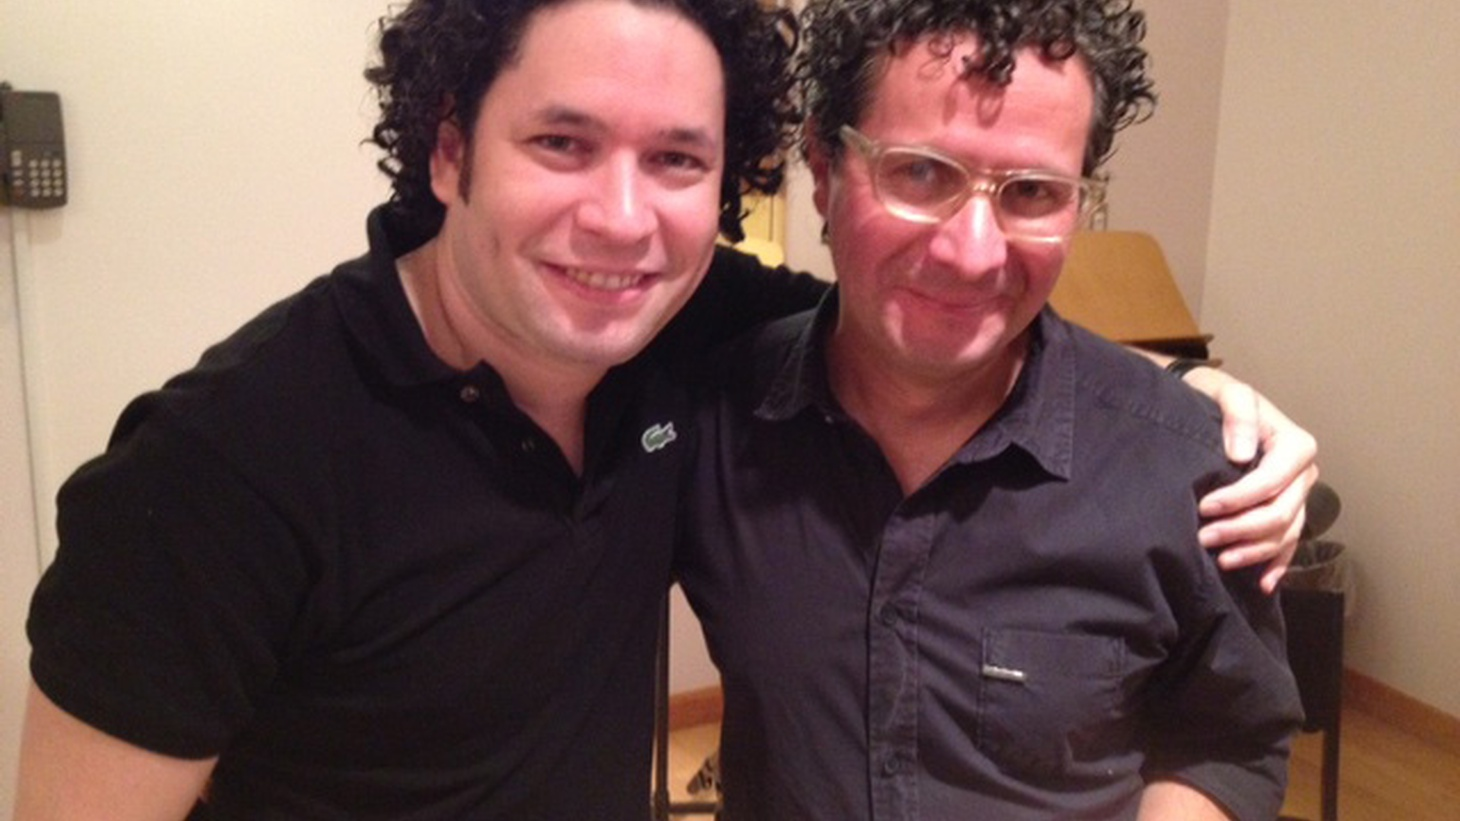 Filmmaker Alberto Arvelo and LA Philharmonic conductor Gustavo Dudamel sit down with Kim Masters at the Walt Disney Concert hall to talk about the special role of music in the new Simón Bolívar biopic, The Liberator.